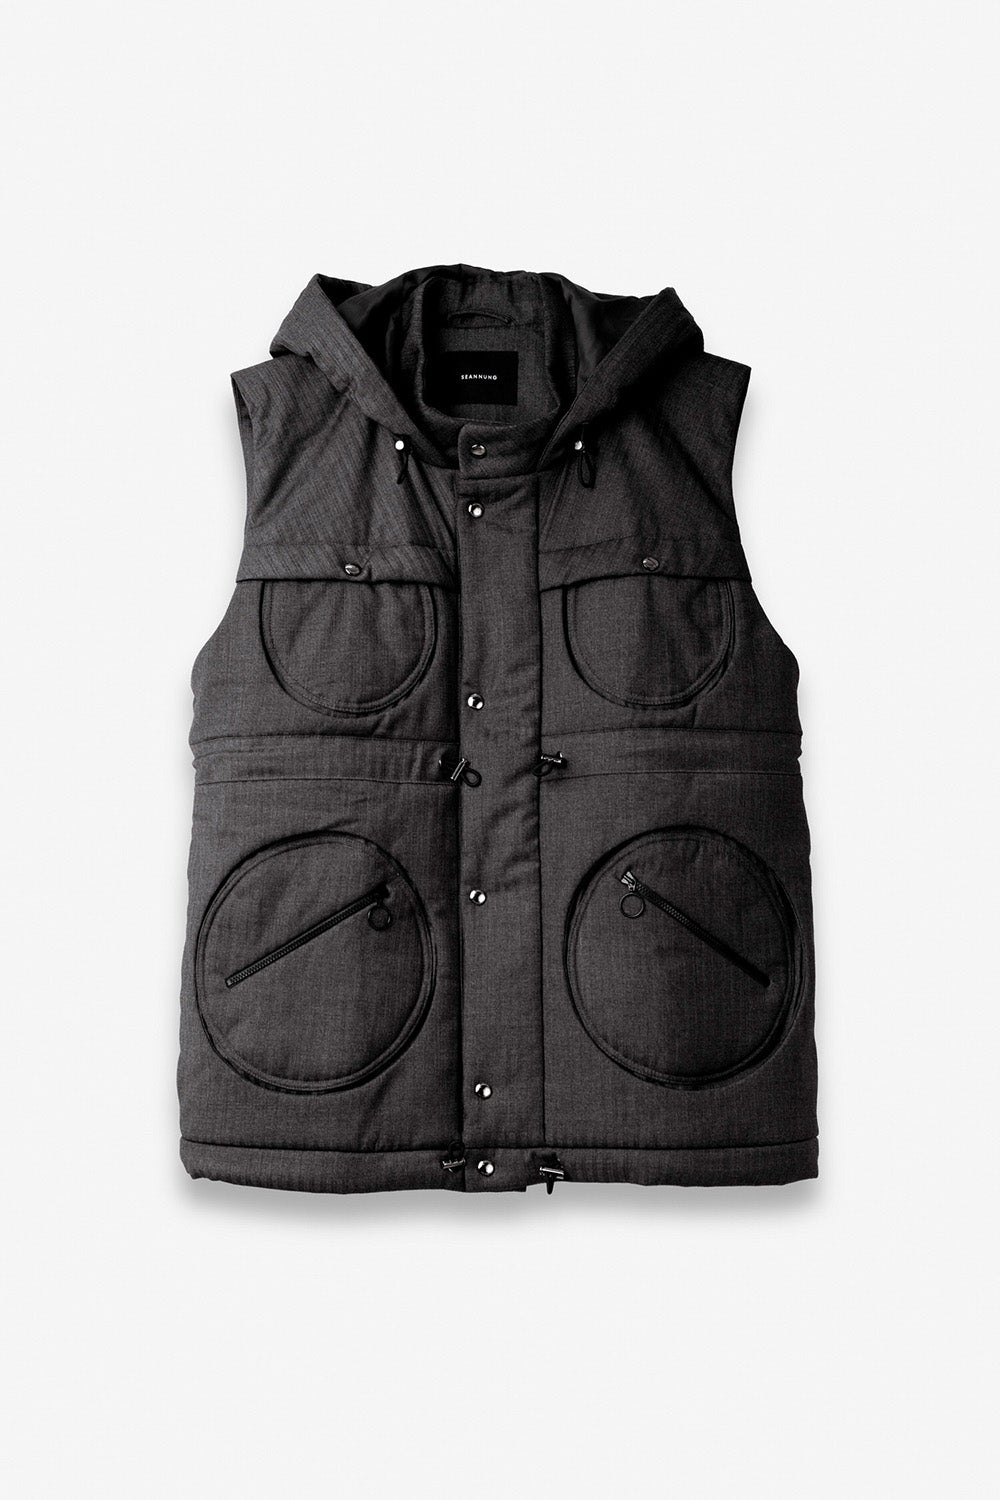 Circle Patch Pocket Sleeveless Quilted Jacket in Grey